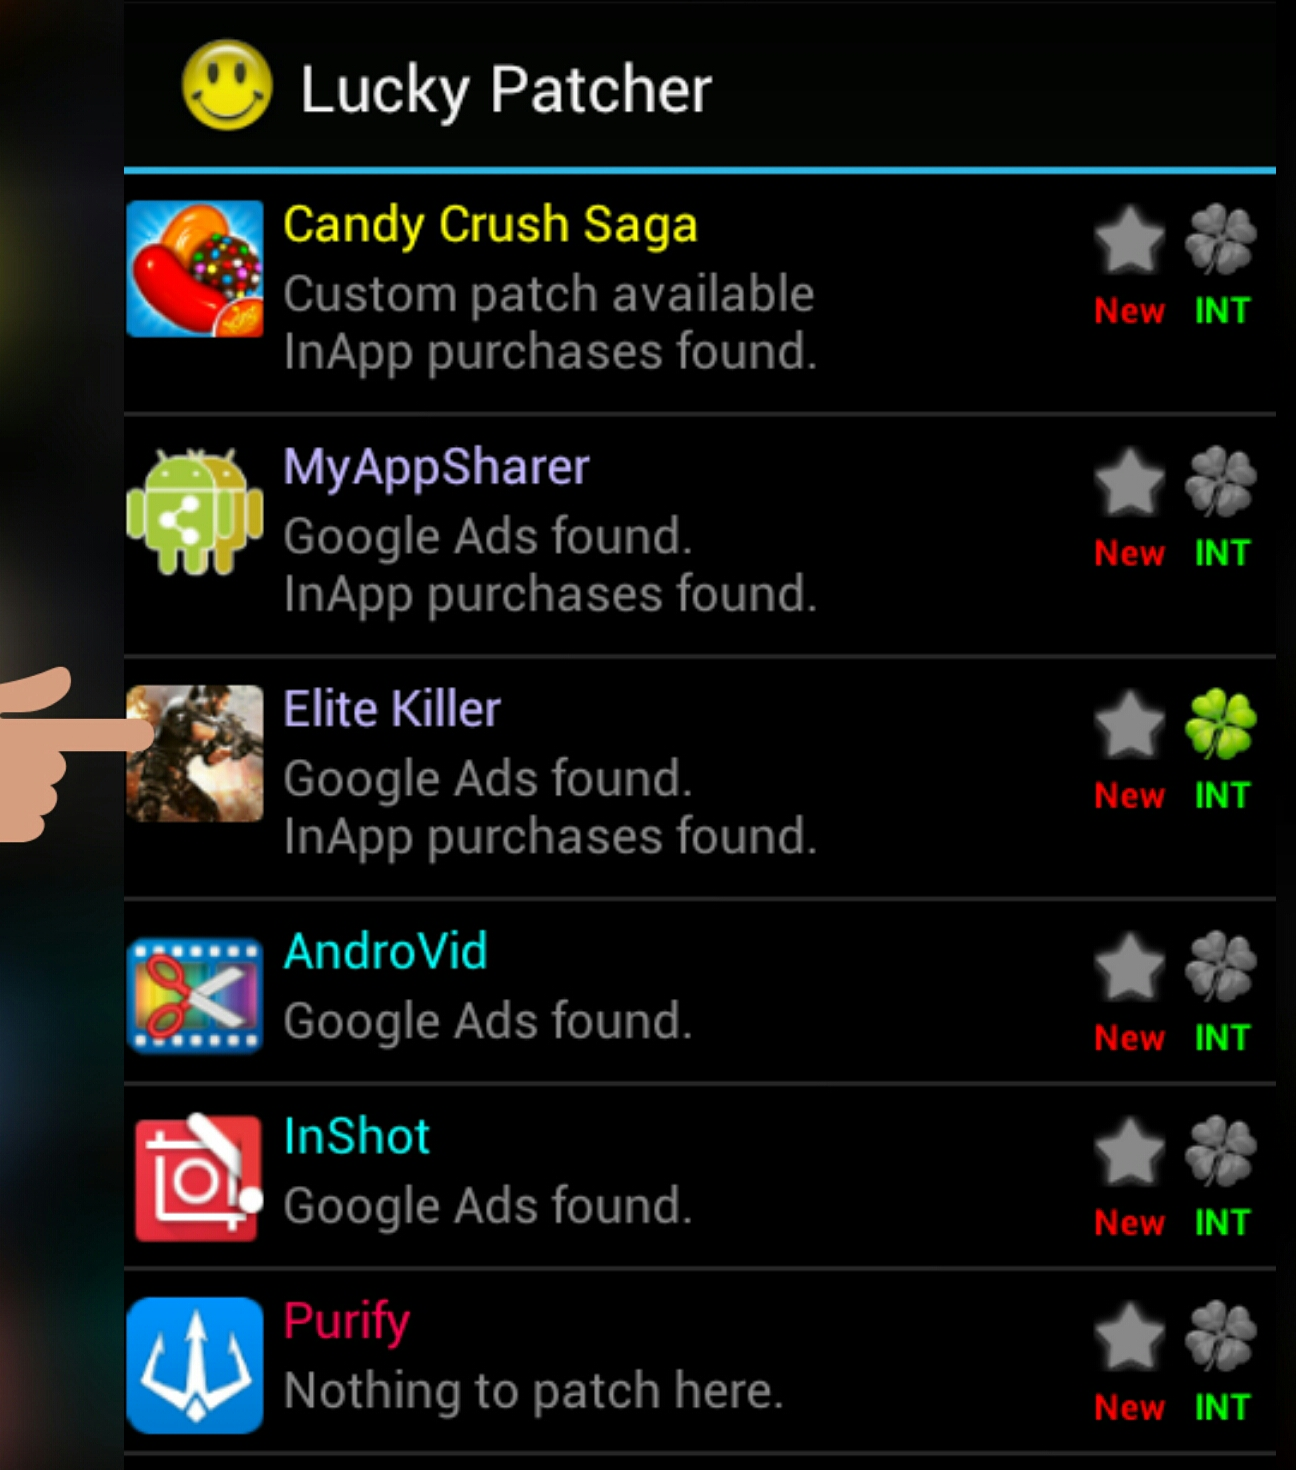 Android Game Ko Hack Kese Kare(Lucky Patcher App)SE - Story